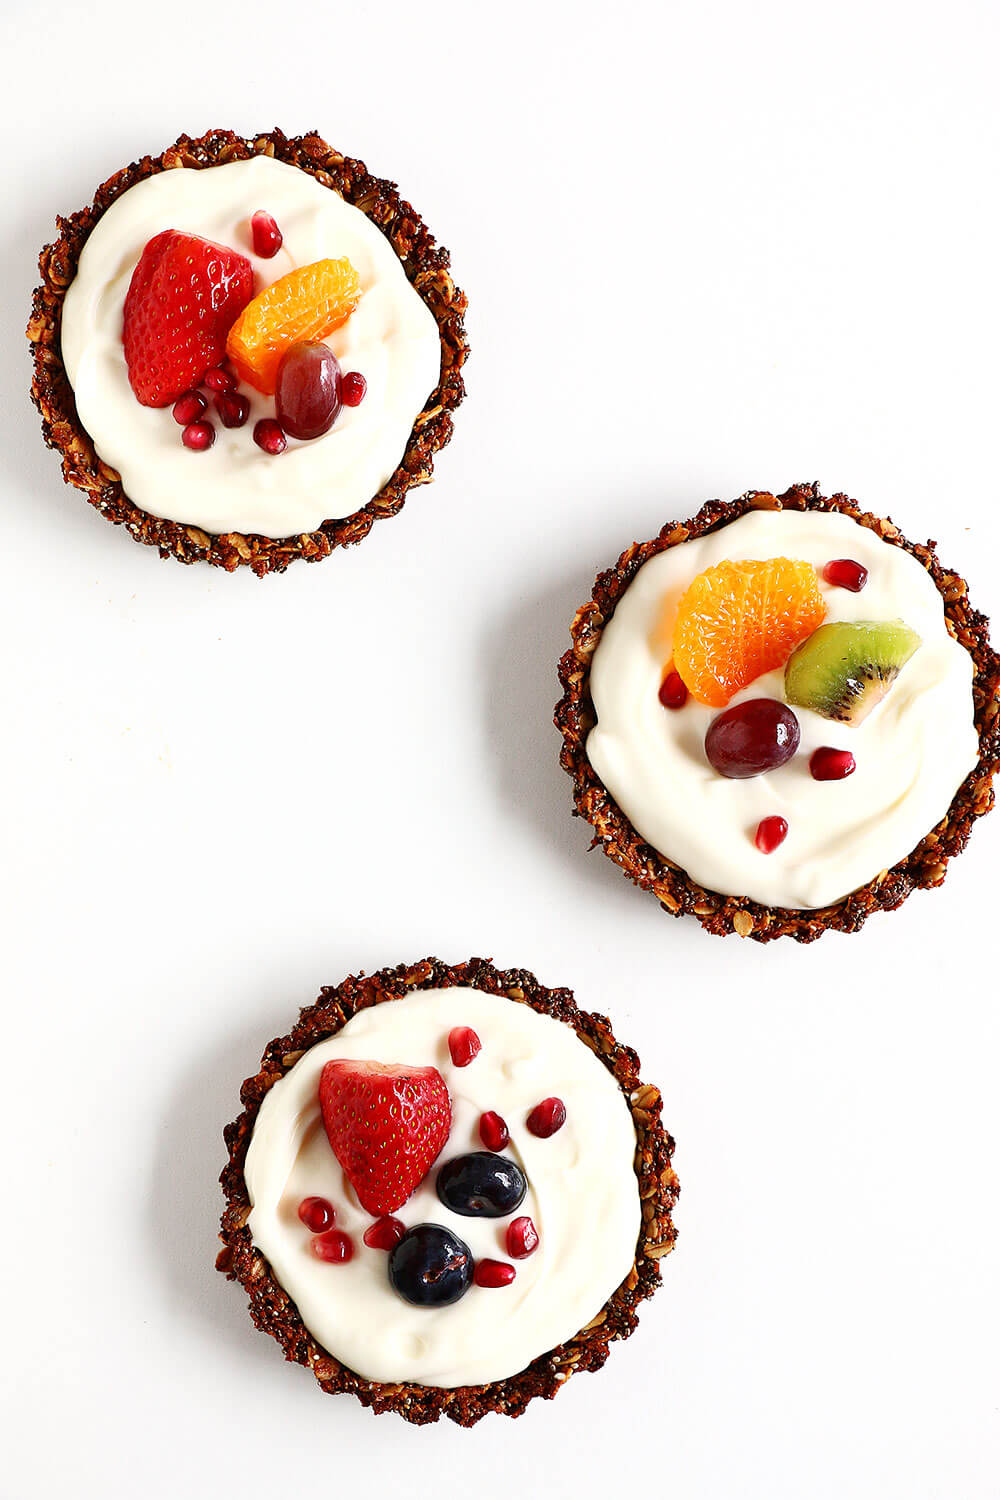 Breakfast Fruit Tarts... my new favorite breakfast! Easy to make, and so delicious. They are so pretty, no one expects them to be so healthy, too!